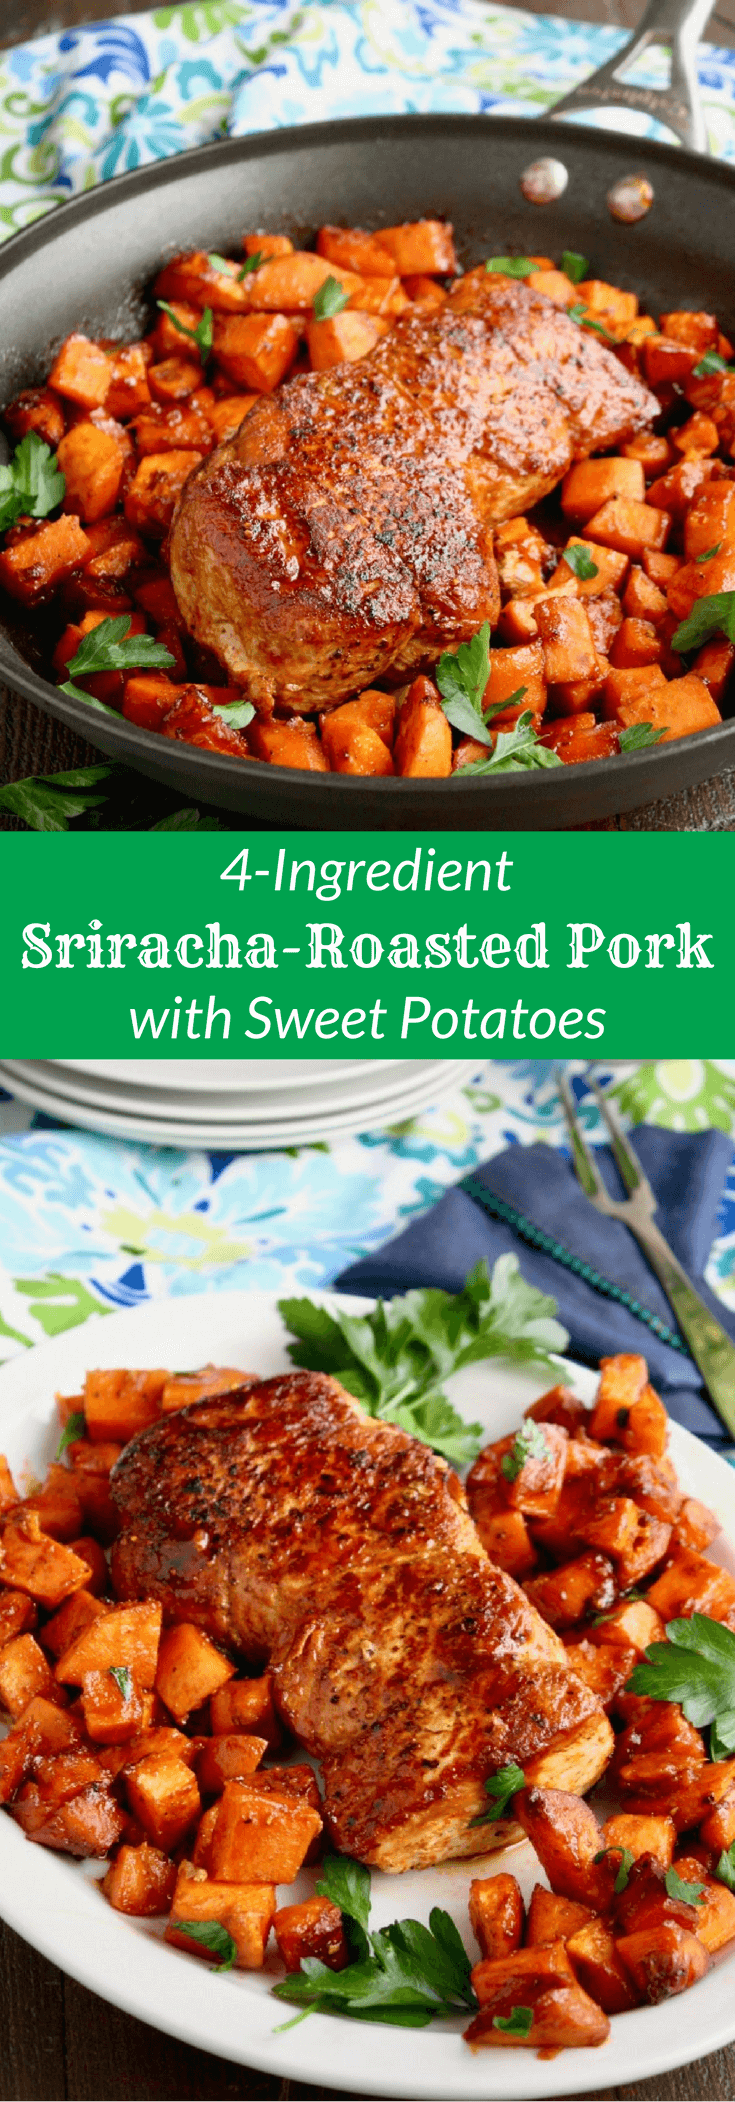 This 4-ingredient Sriracha-Roasted Pork with Sweet Potatoes is so flavorful and easy to make!